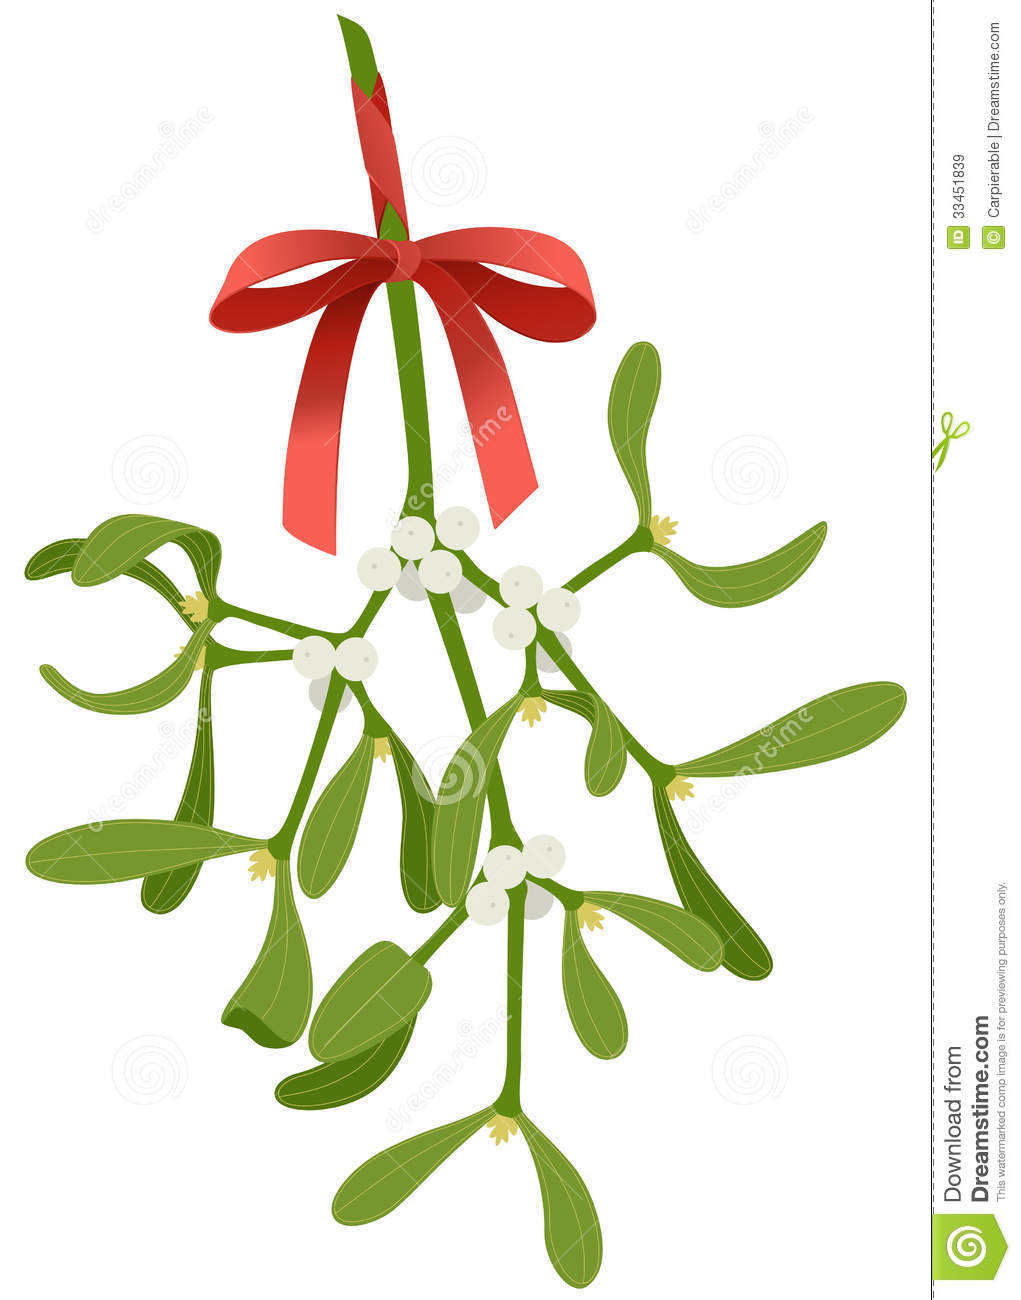 Mistletoe Twig Royalty Free Stock Images - Image: 33451839